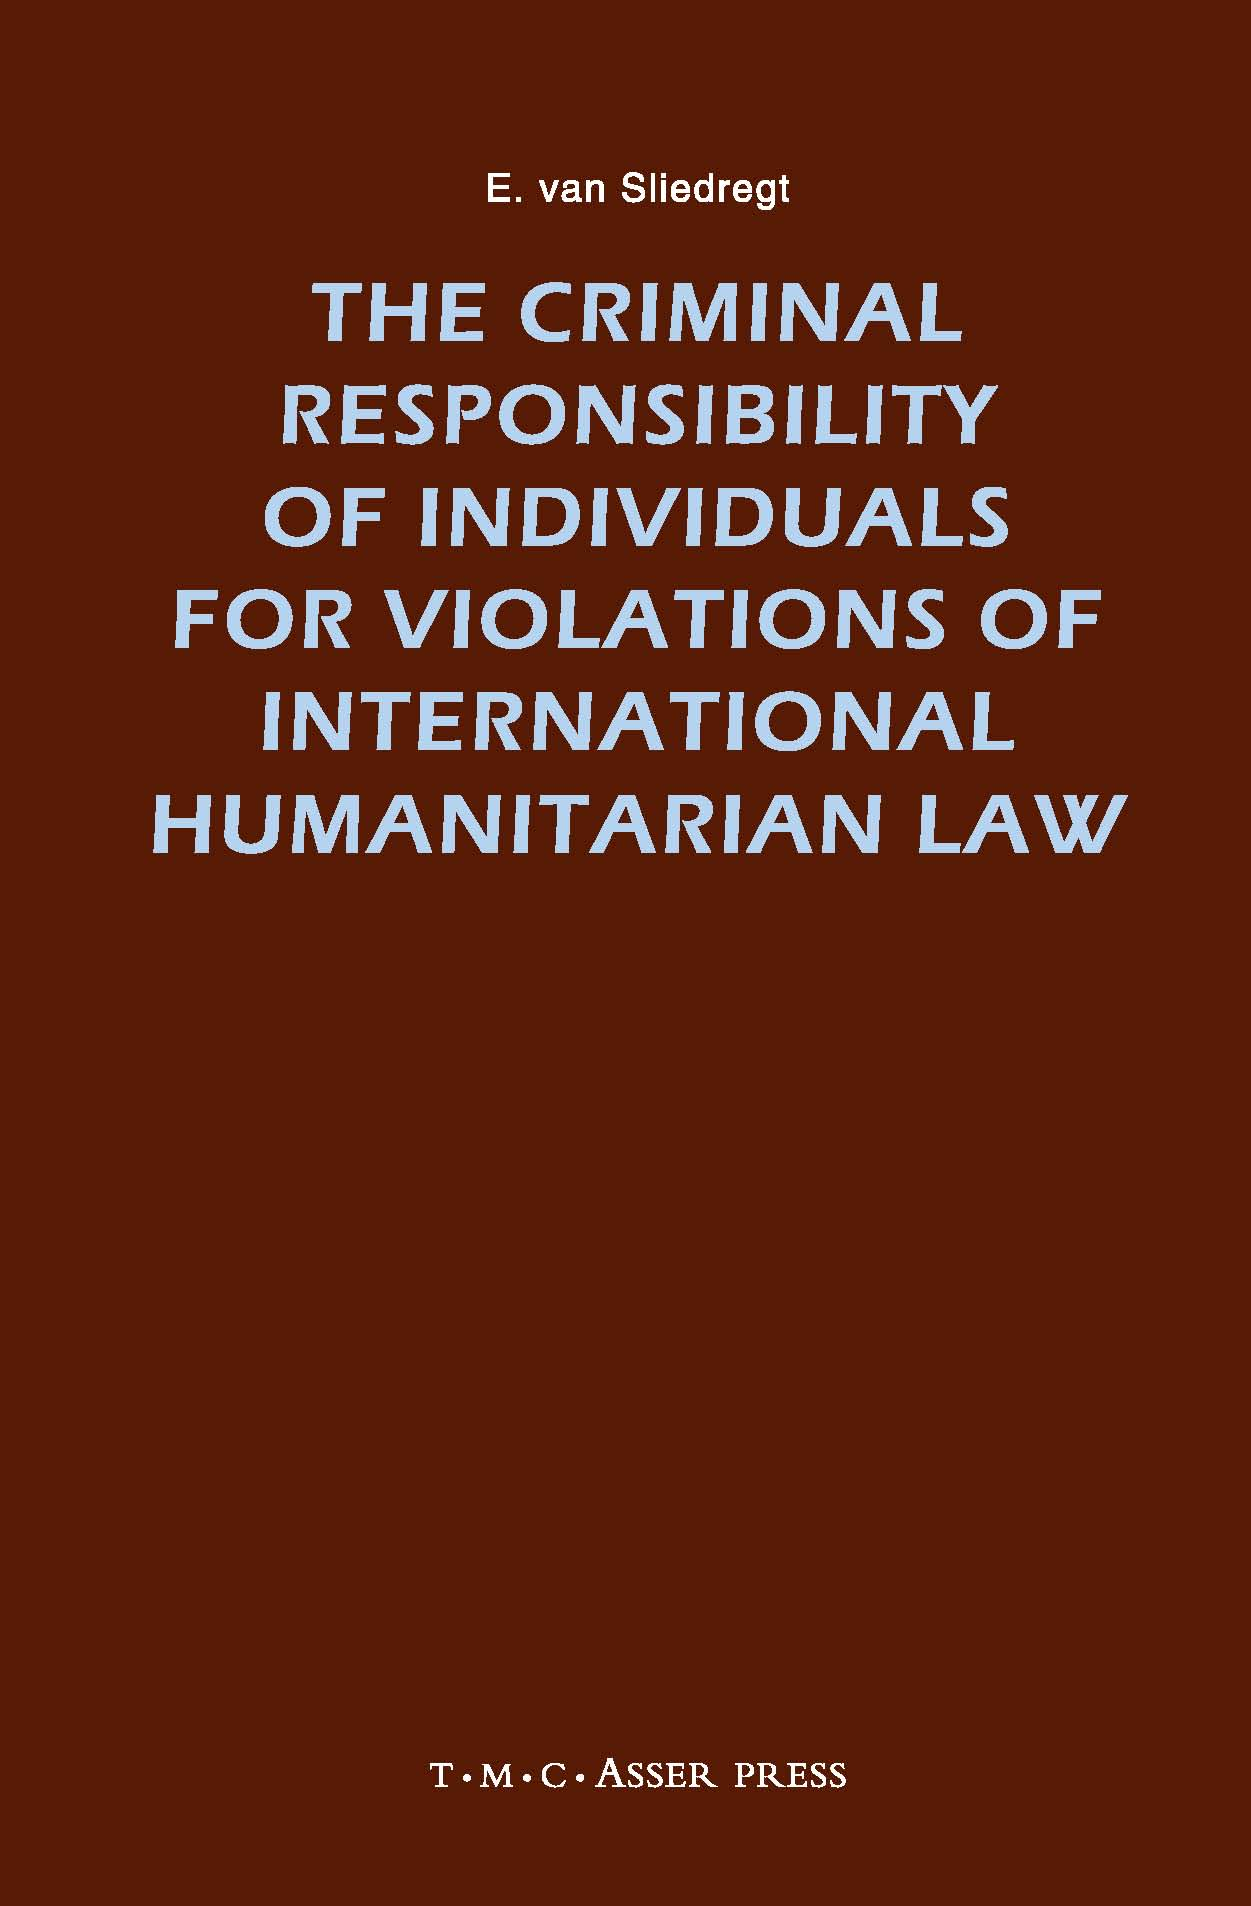 The Criminal Responsibility of Individuals for Violations of International Humanitarian Law